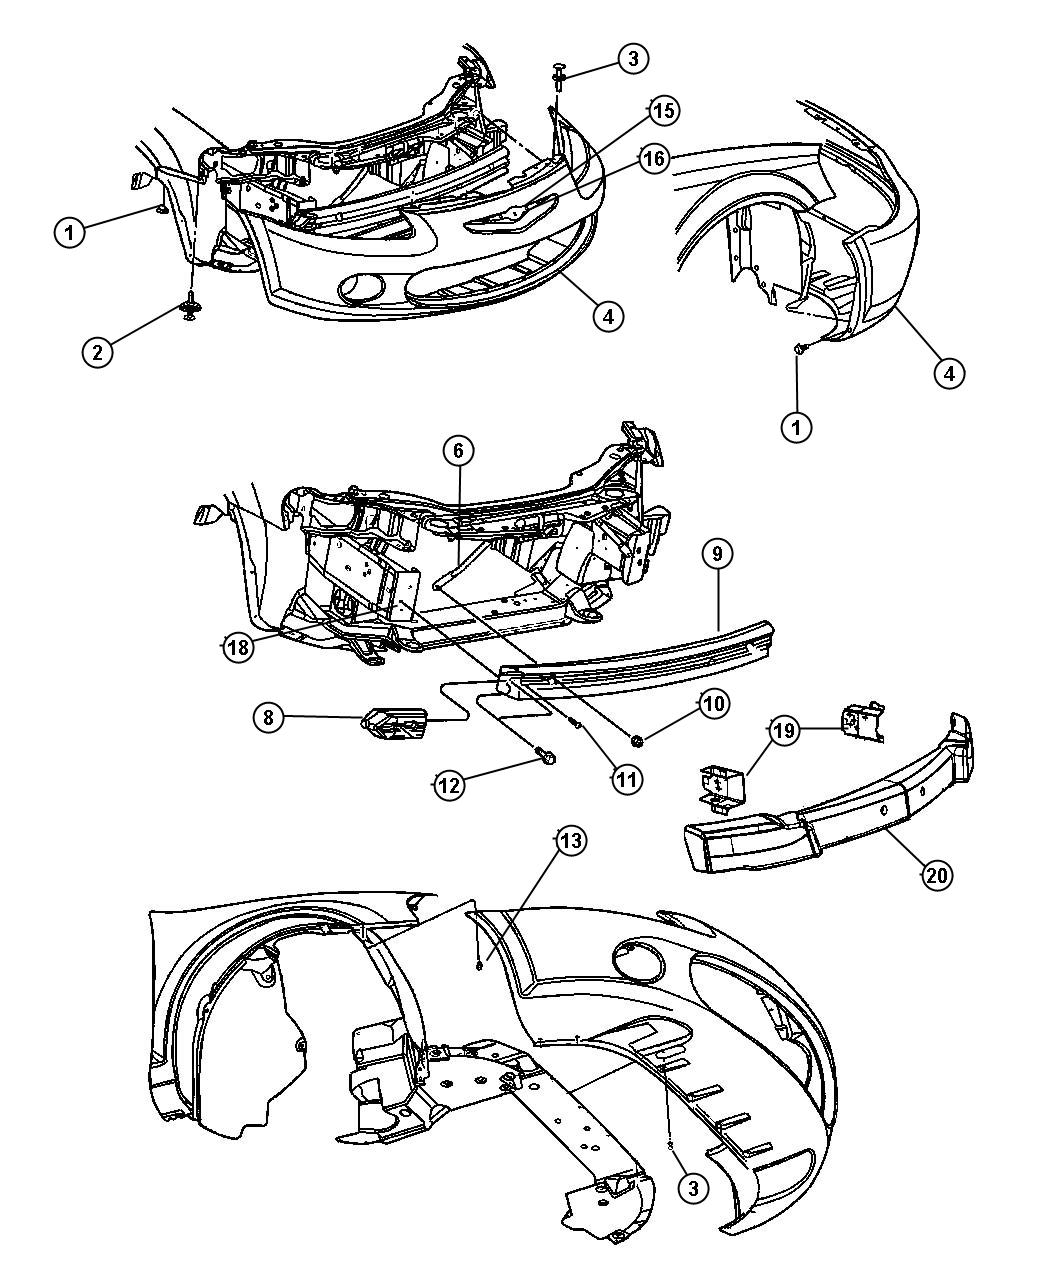 2002 Chrysler Sebring Parts Diagram Bumper. Chrysler. Auto